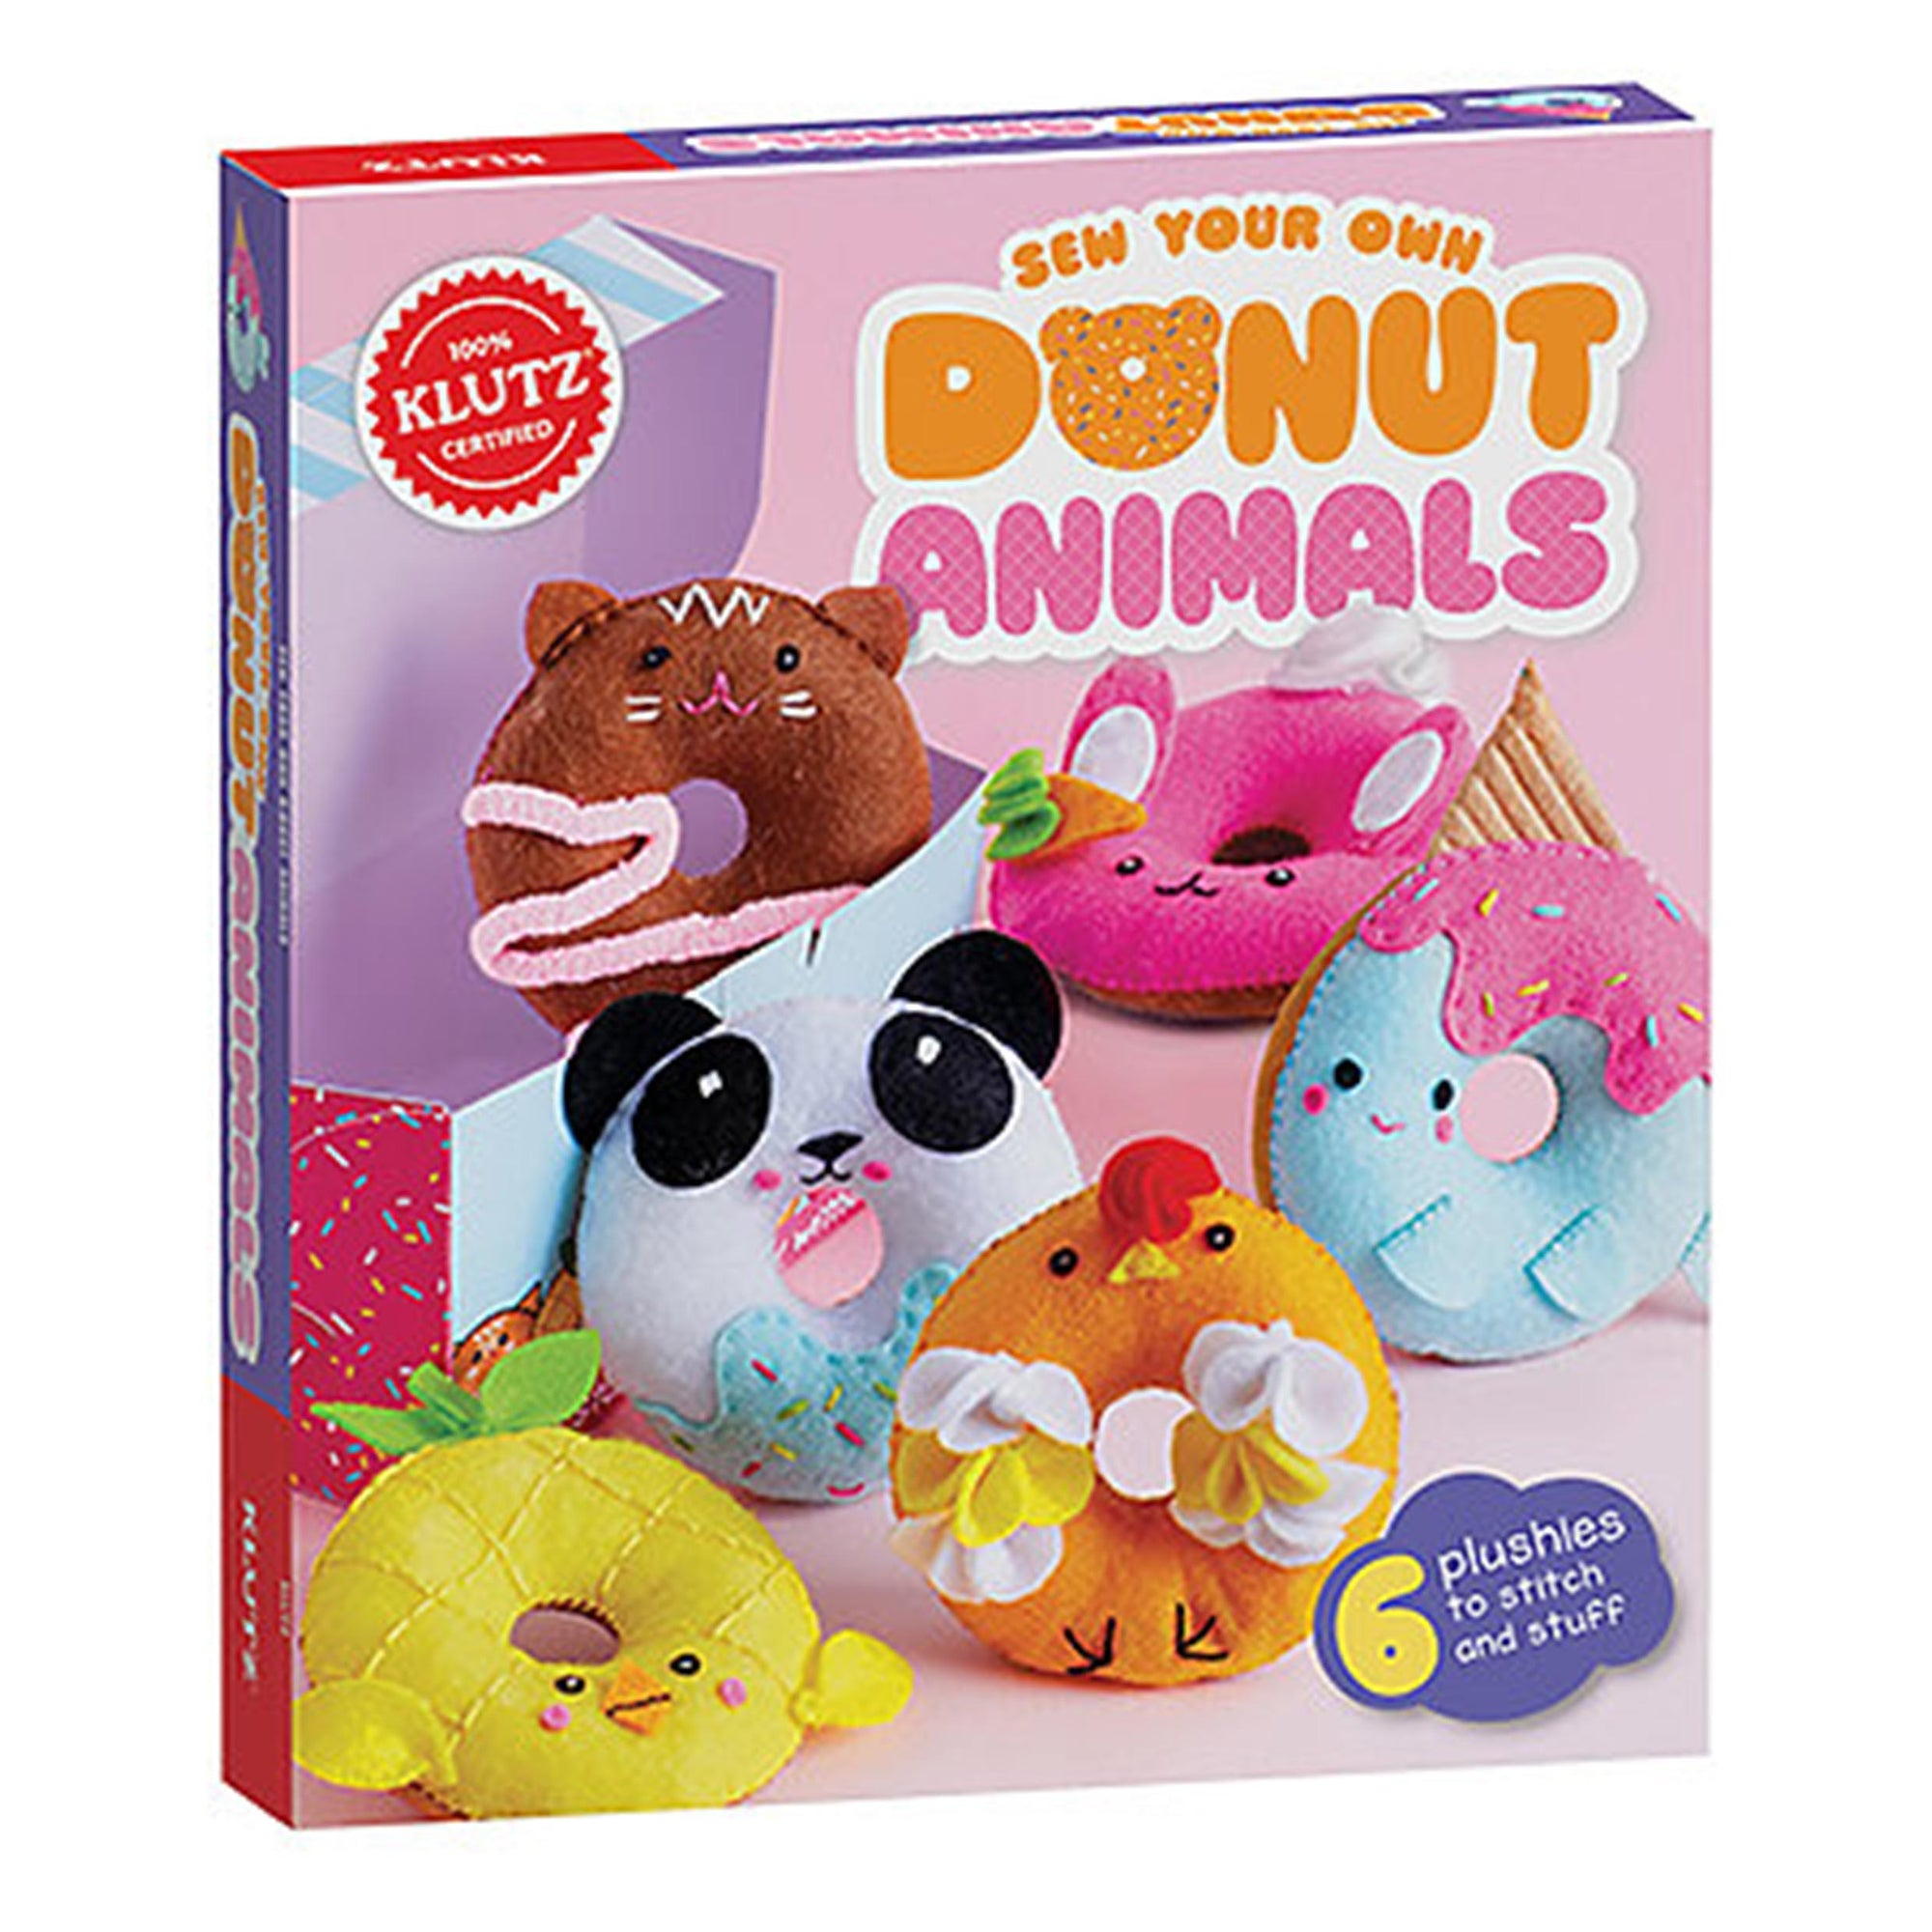 Sew Your Own Donut Animals Kit